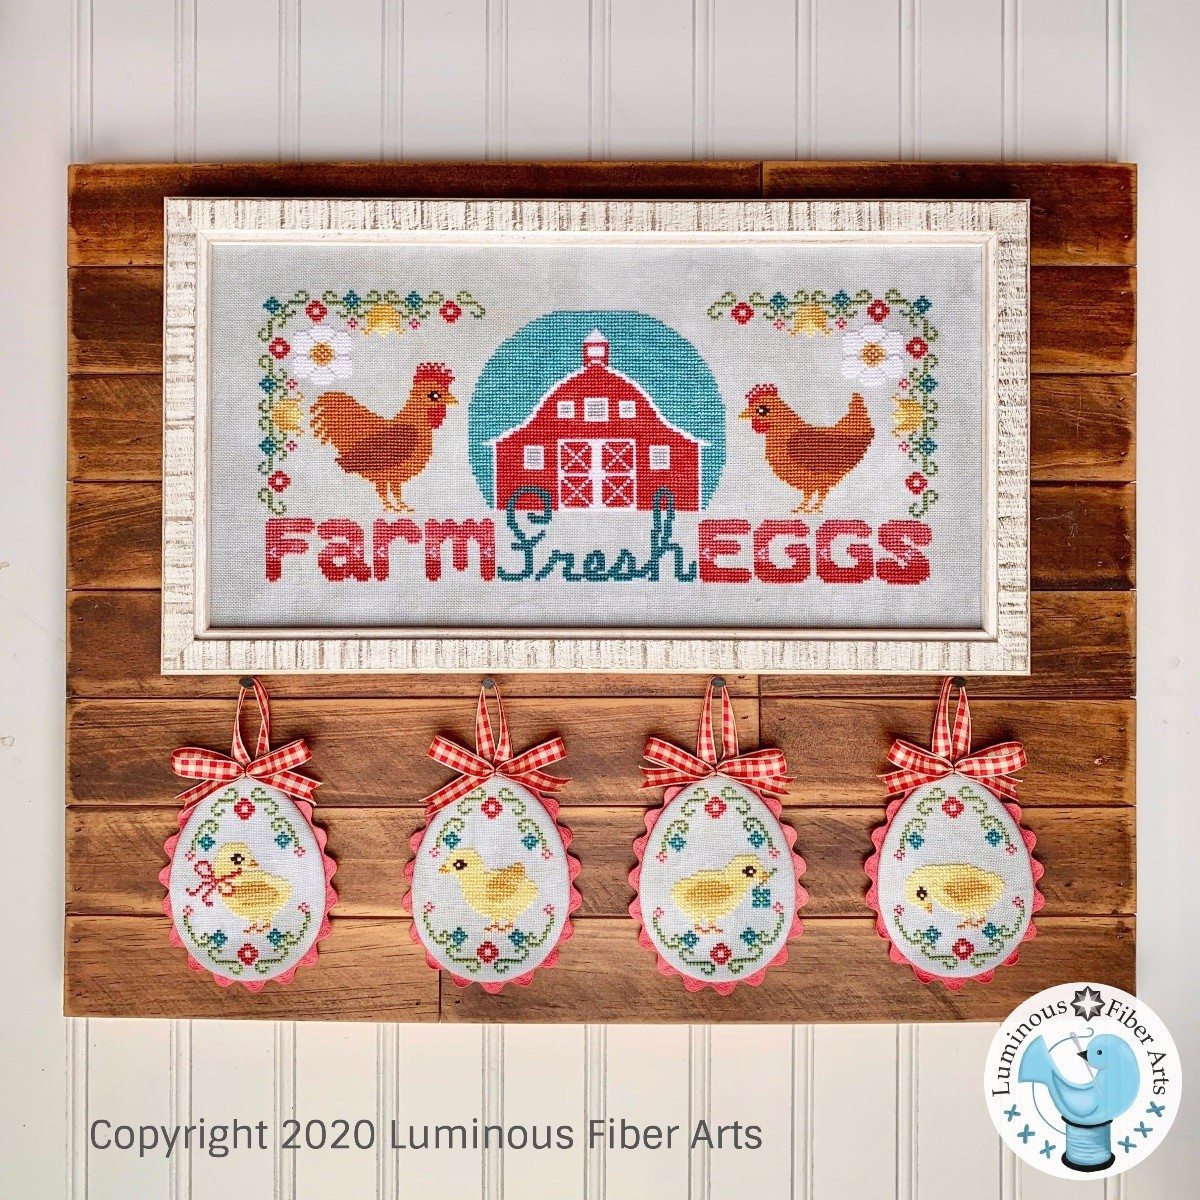 Farm Fresh Eggs - Luminous Fiber Arts